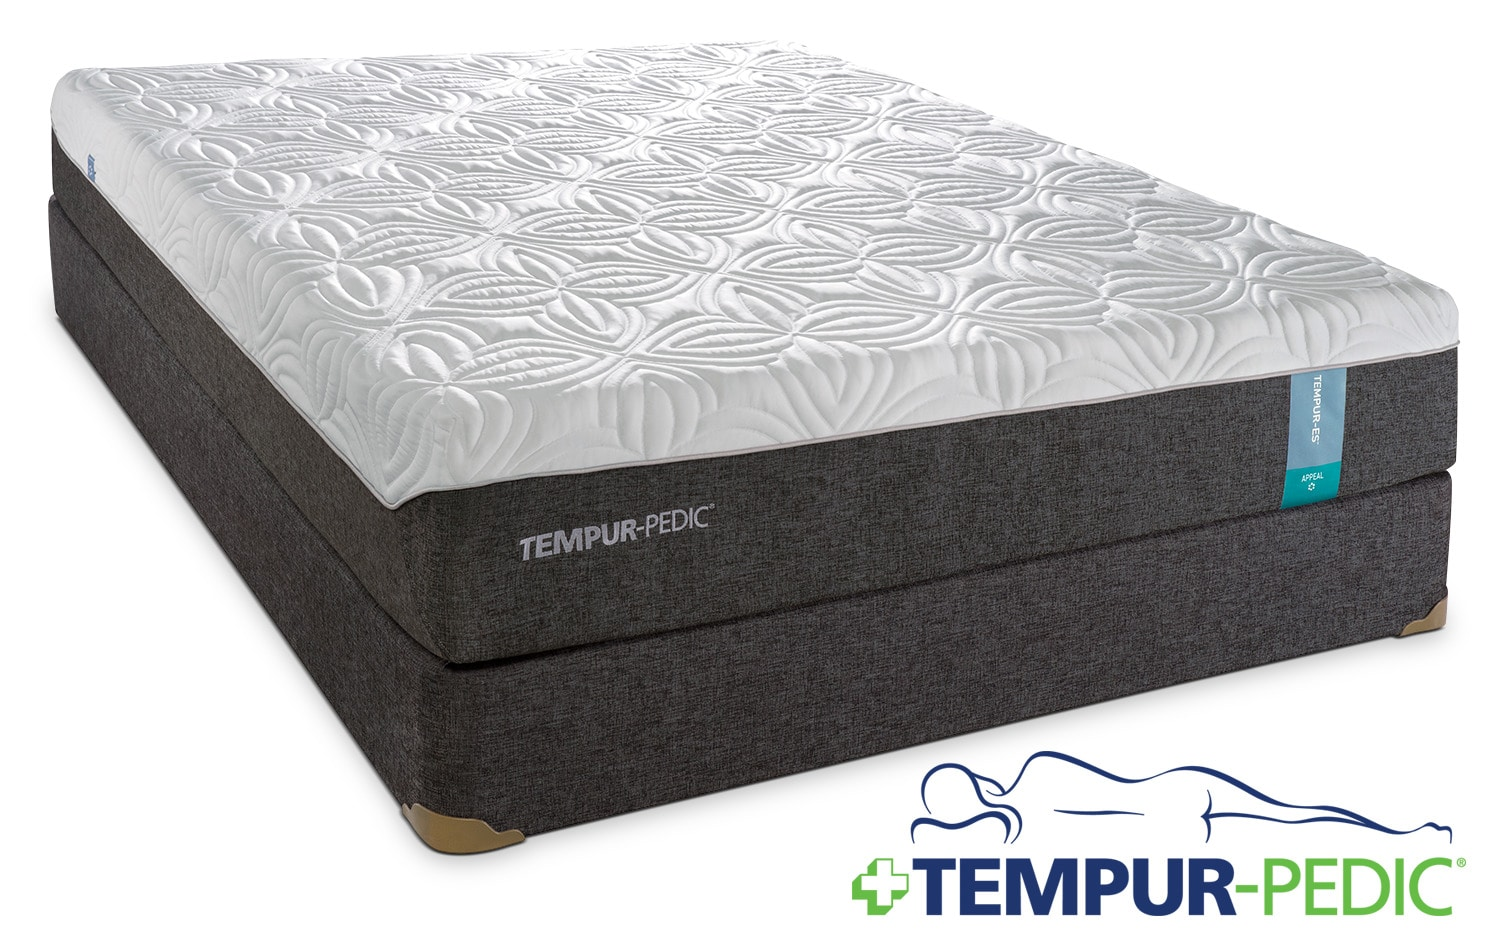 tempur pedic appeal 2 0 cushion firm queen mattress and boxspring set leon 39 s. Black Bedroom Furniture Sets. Home Design Ideas